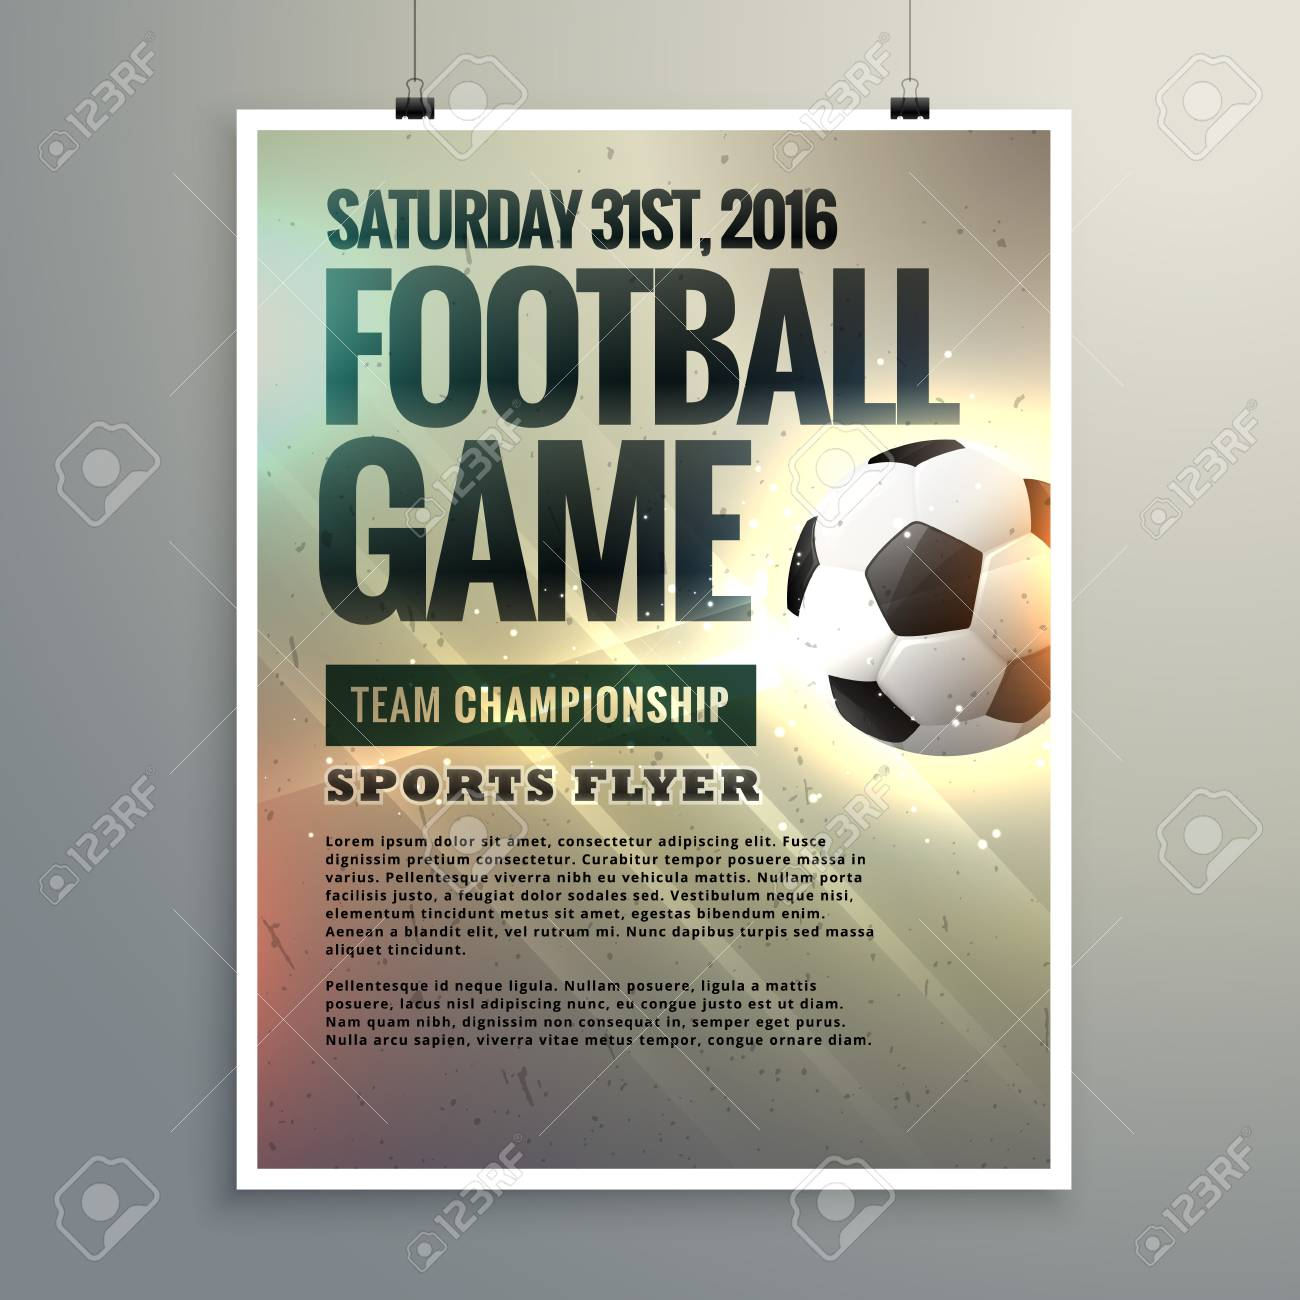 football event flyer design with tournament details royalty free